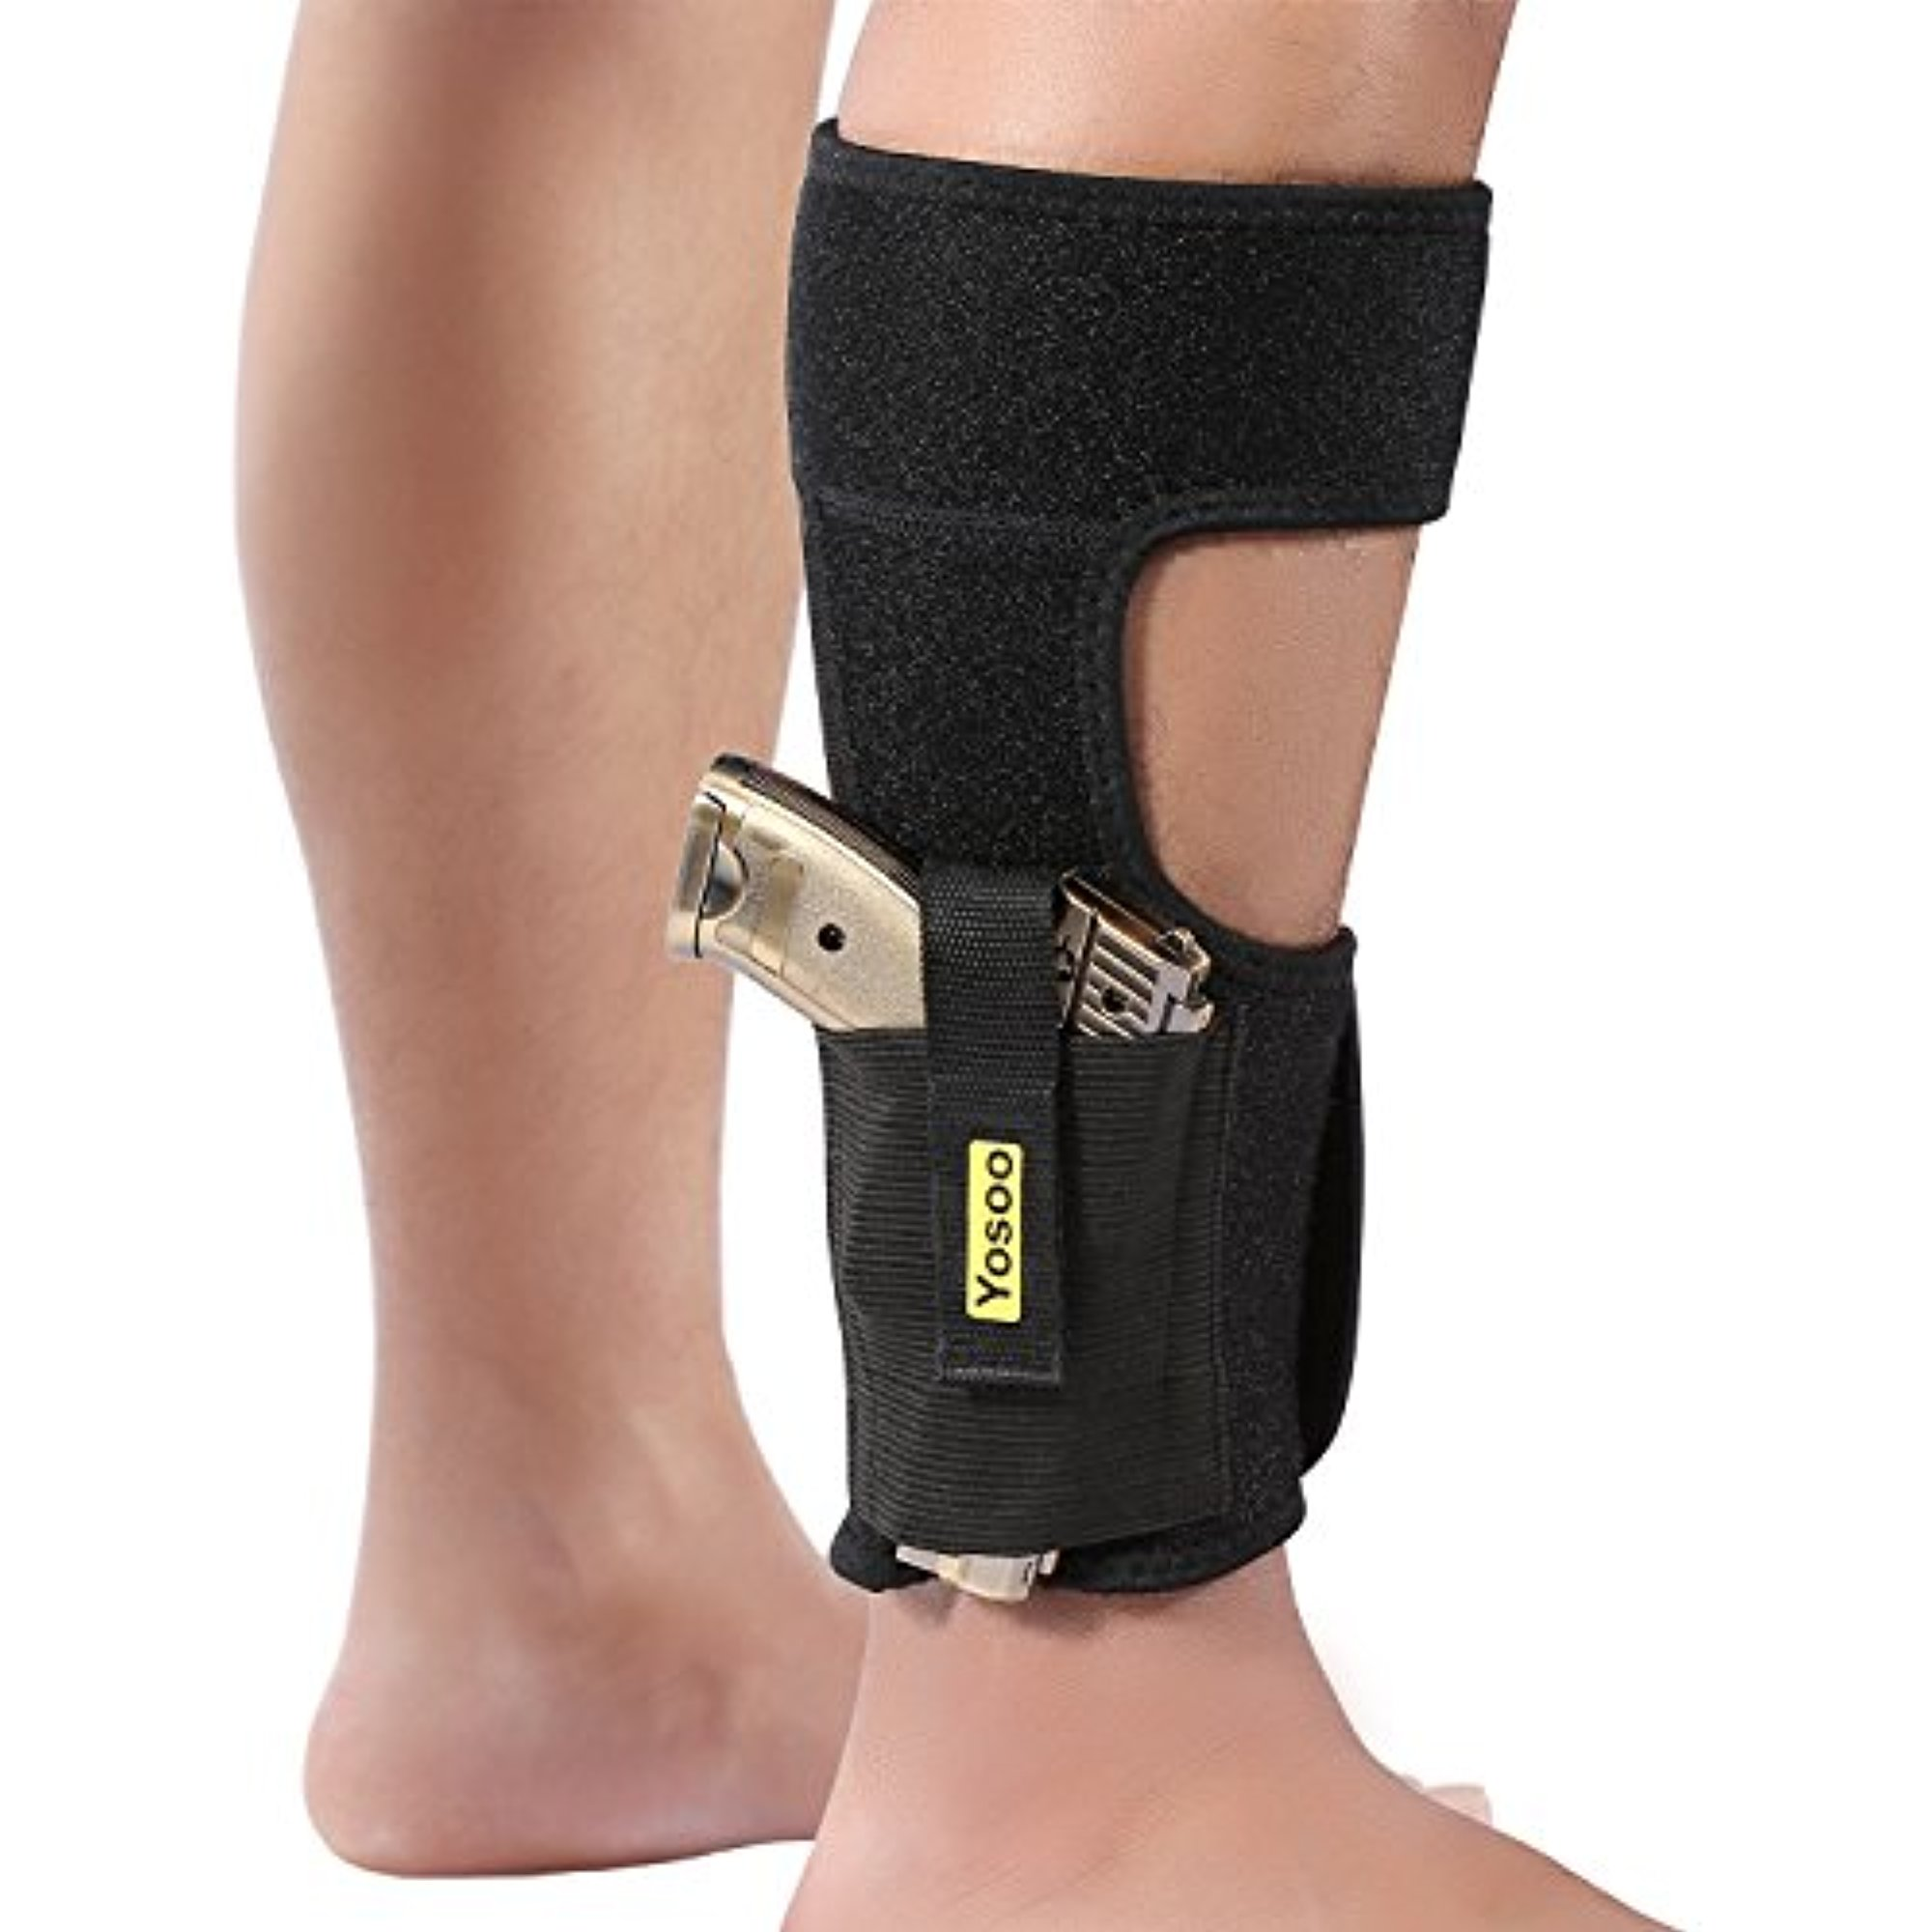 Yosoo Ankle Holster Adjustable Neoprene Elastic Wrap Concealed Ankle Carry Gun Holster with Magazine Pocket